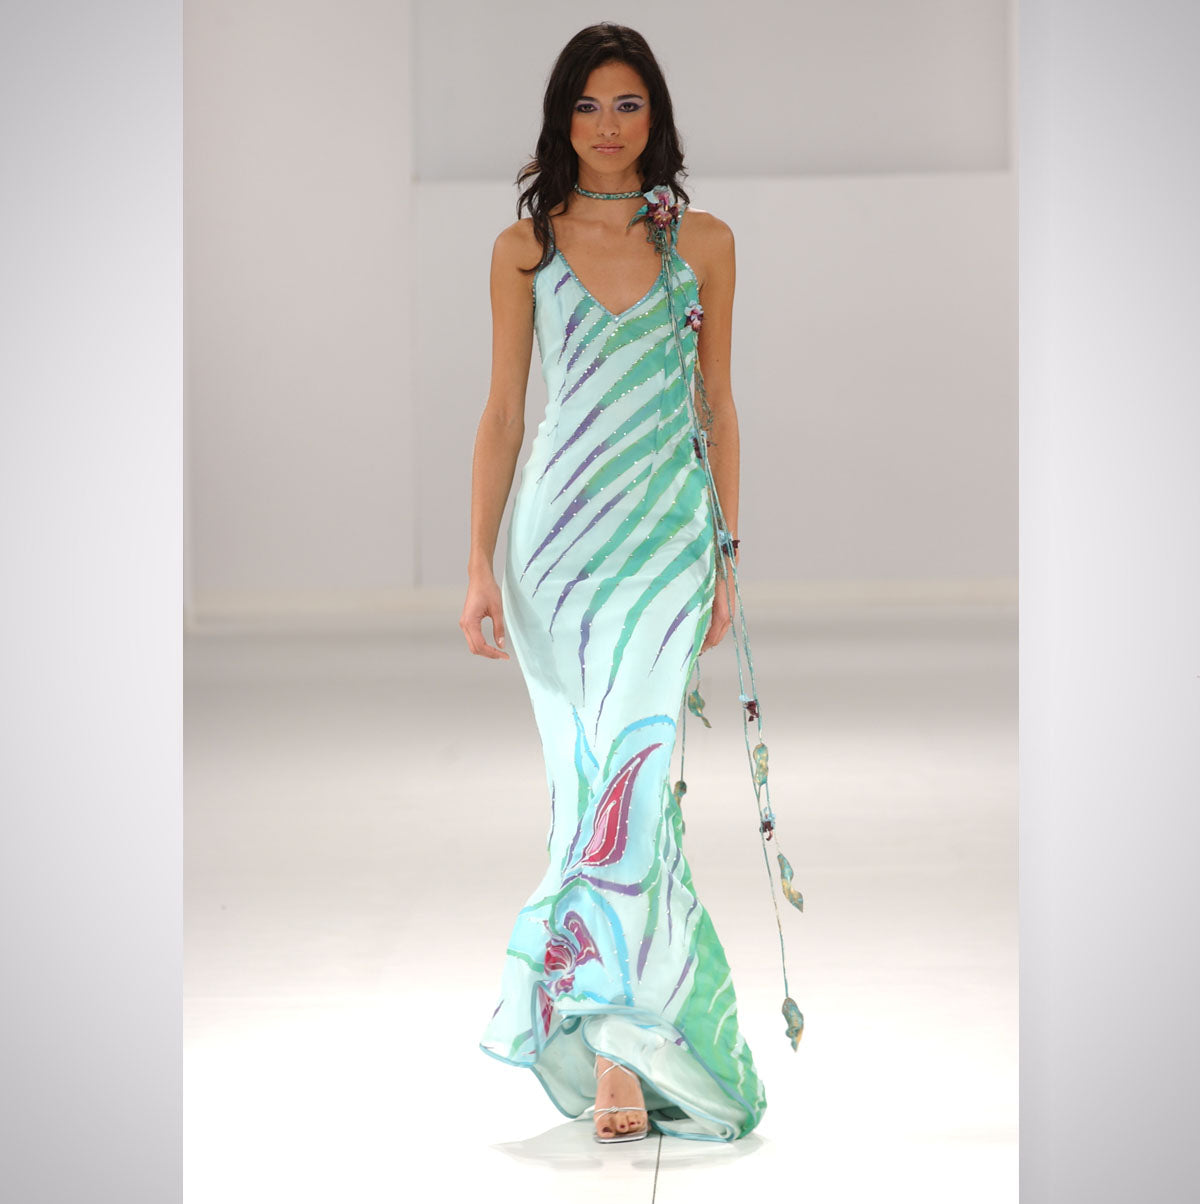 Heather Jones Hand-painted Silk Chiffon Rhinestone Jewel Dress